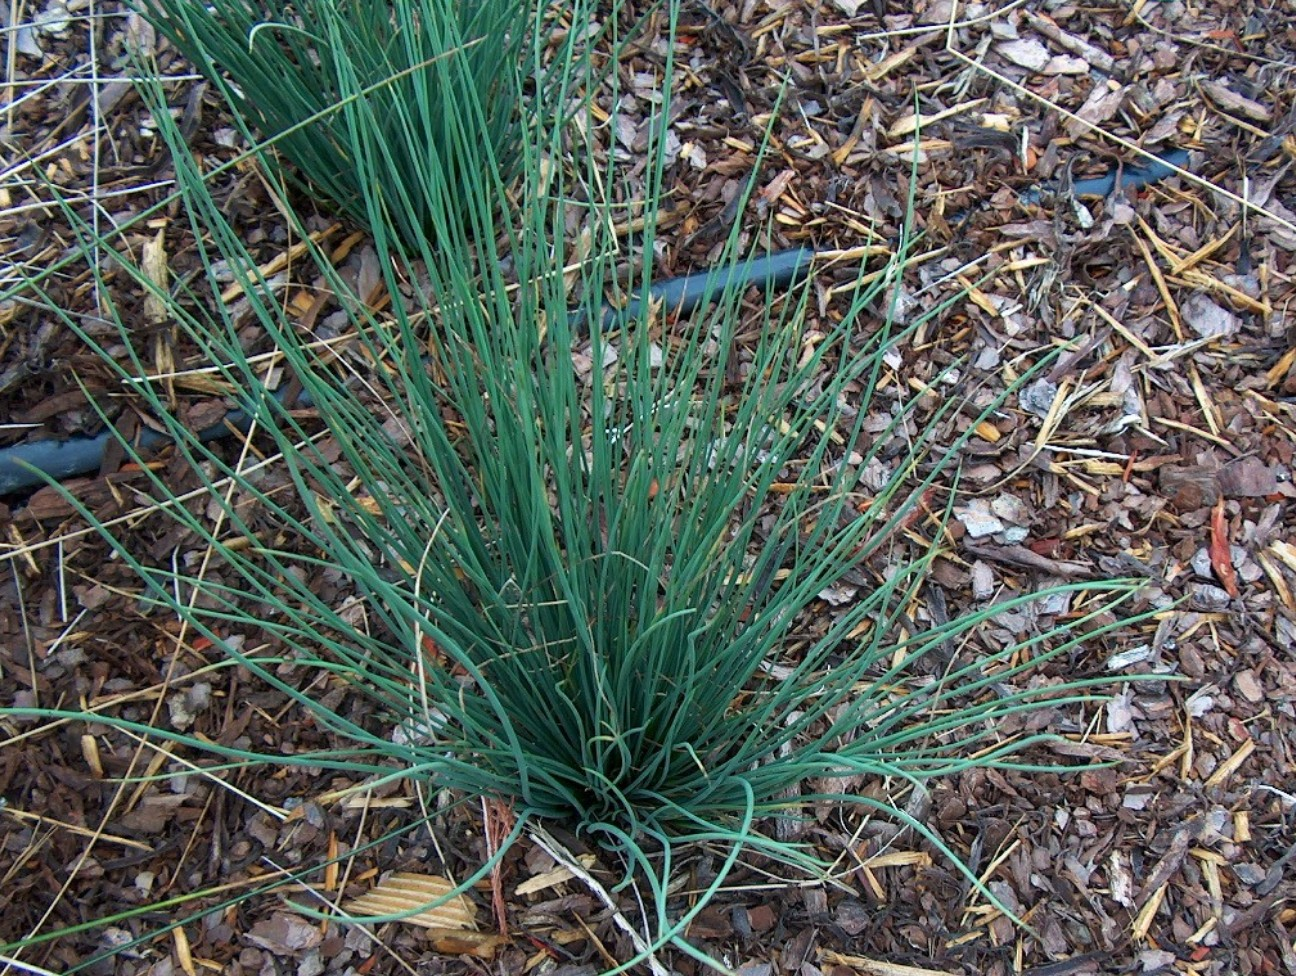 Juncus inflexus 'Blue Arrow'   / Juncus inflexus 'Blue Arrow'